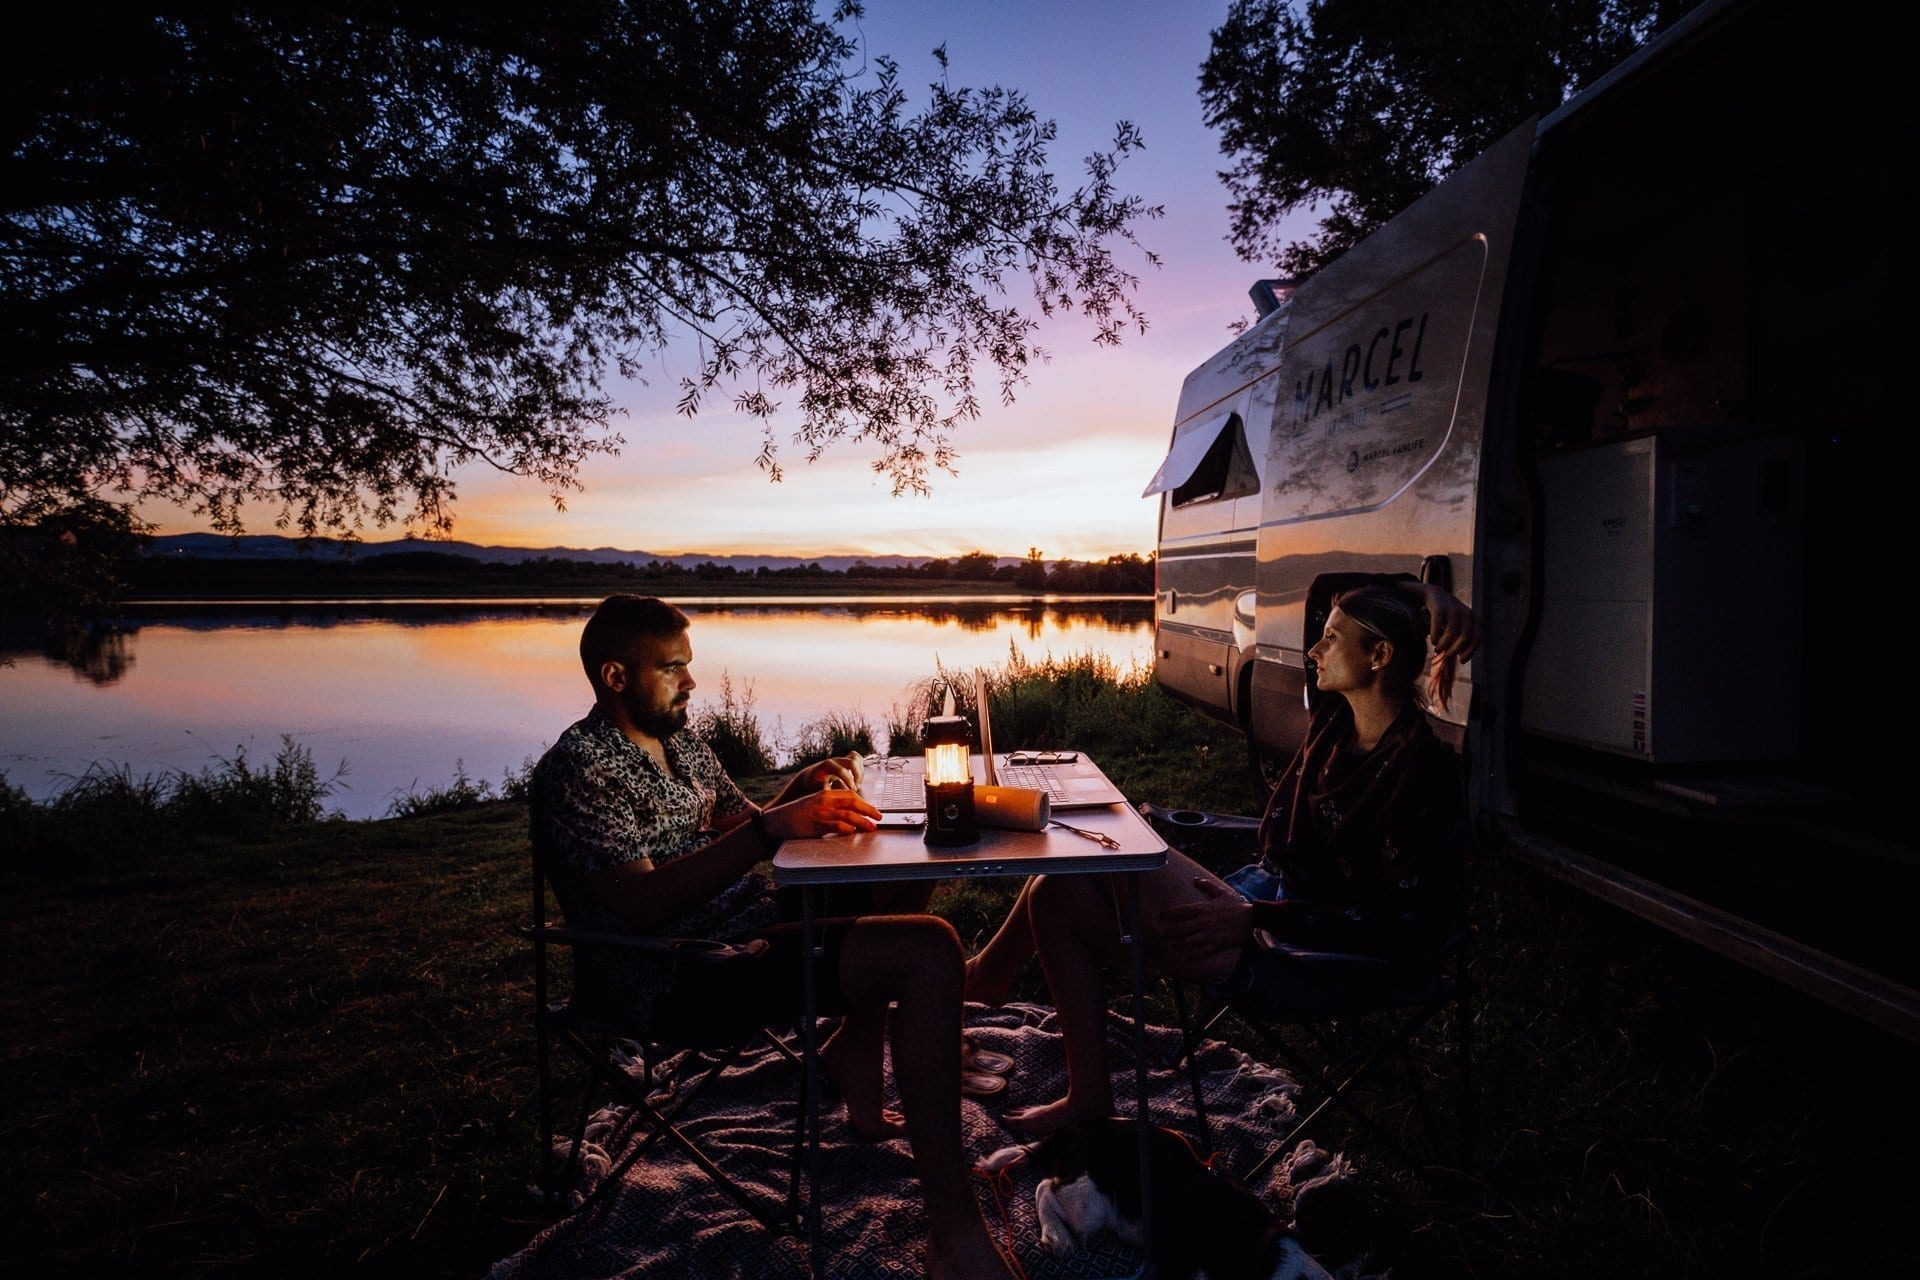 iveco-daily-van-fourgon-amenage-vanlife-roadtrip-europe-camping-sauvage